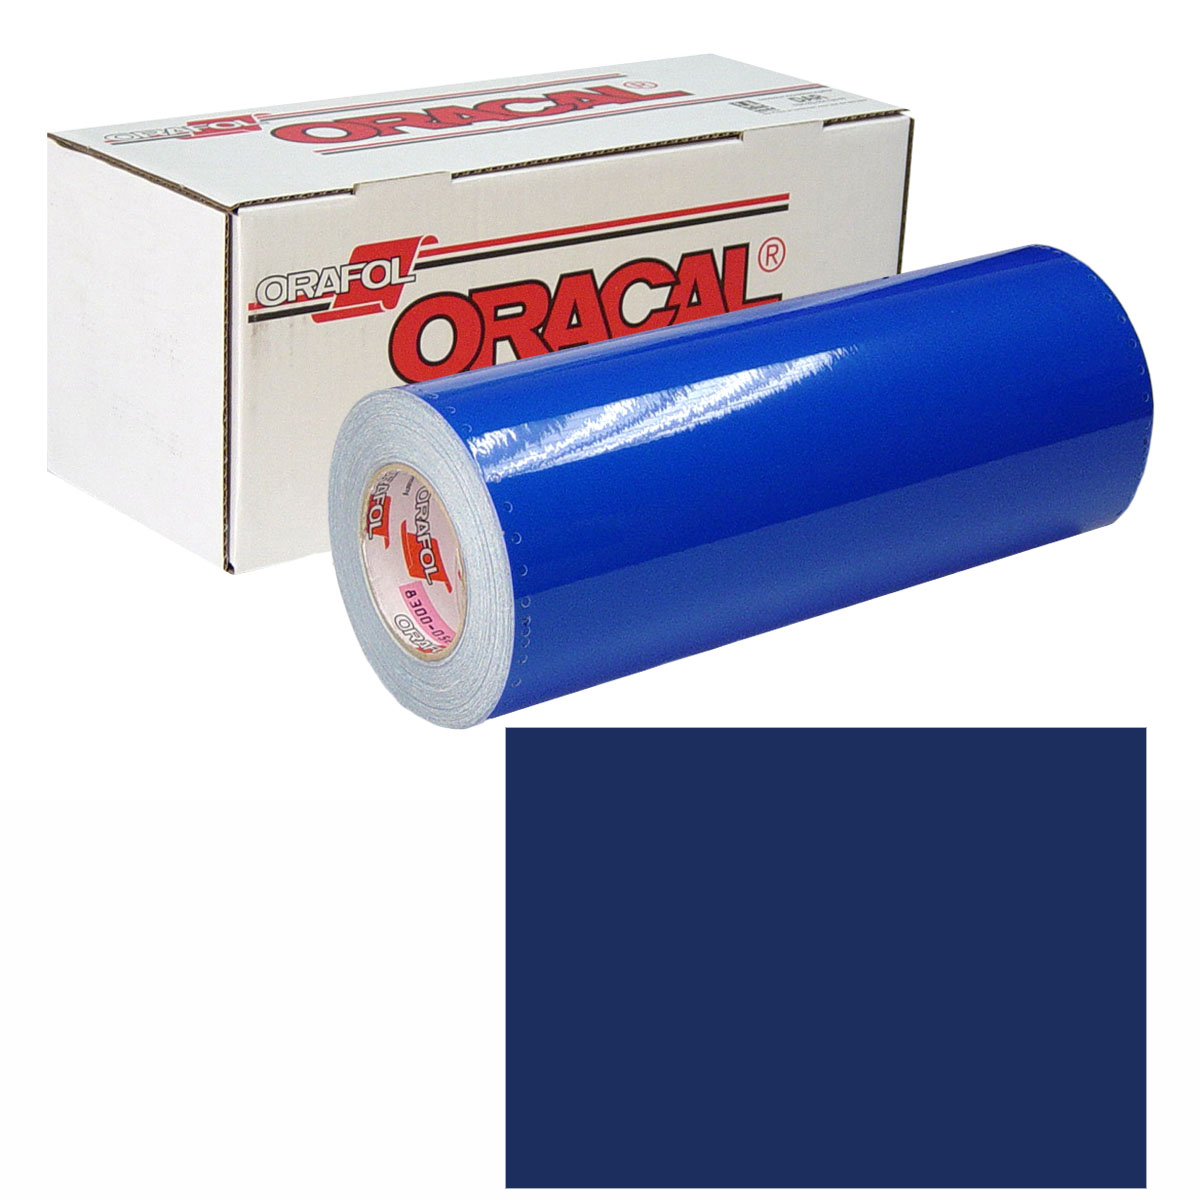 ORACAL 631 Unp 48In X 10Yd 050 Dark Blue